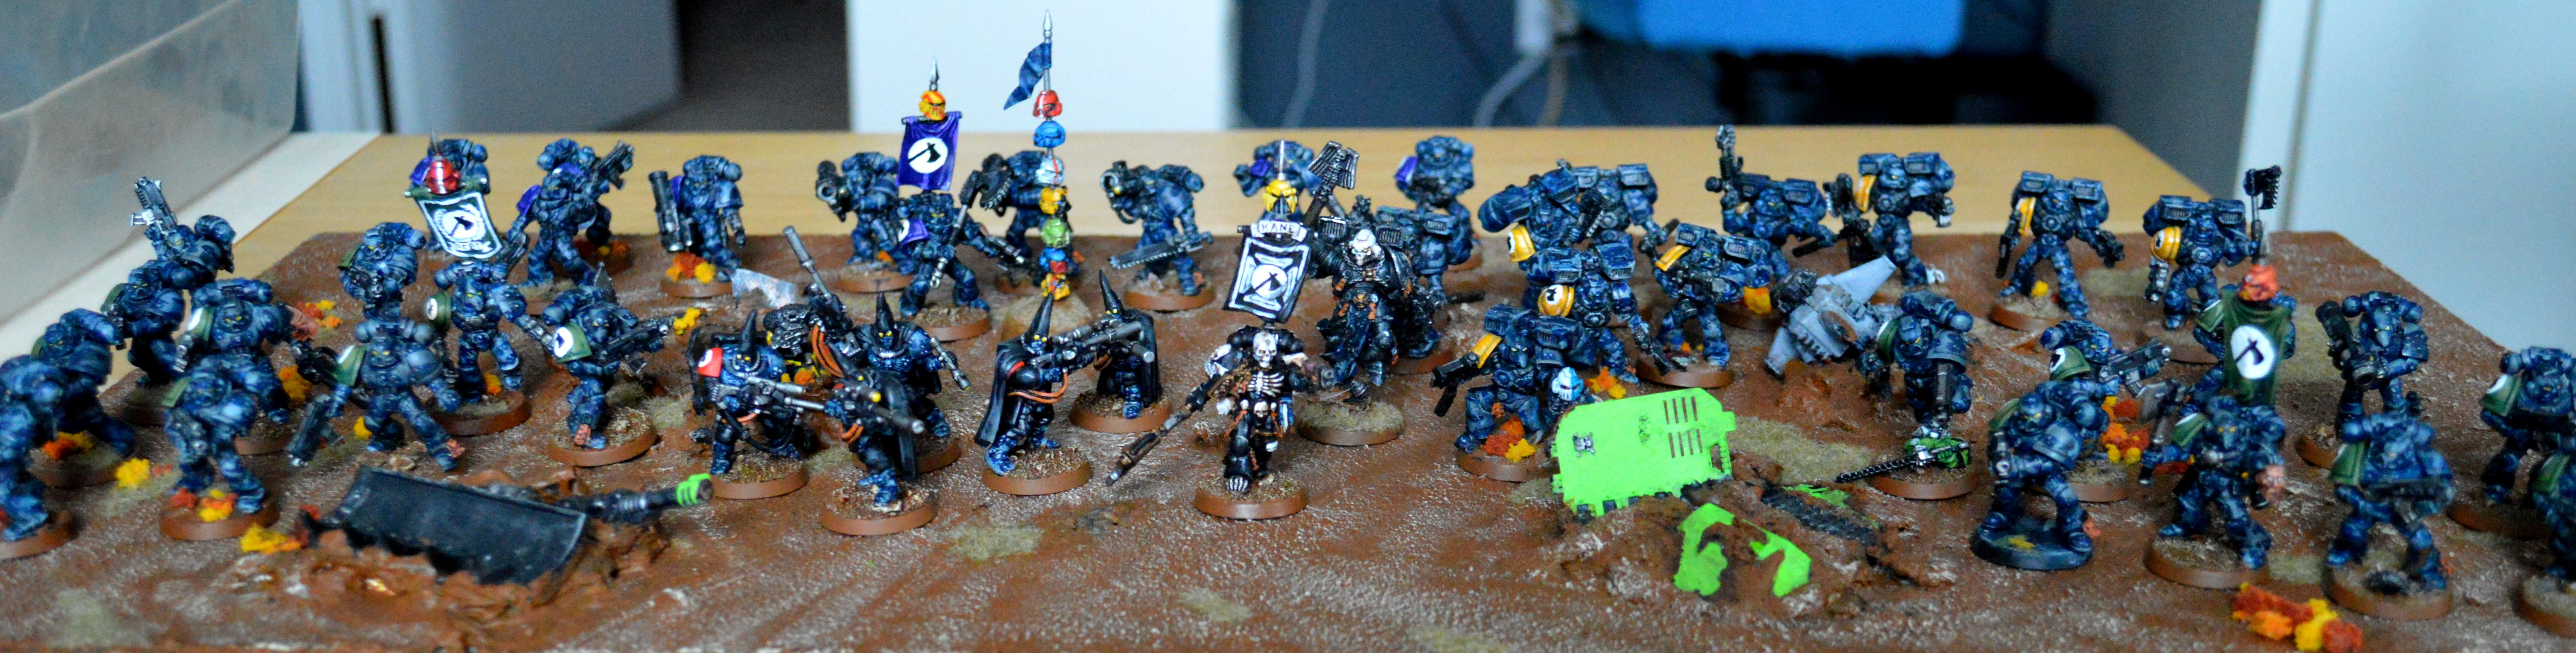 1000 Points, Adepticon 2013, Executioners, Space Marines, Warhammer 40,000